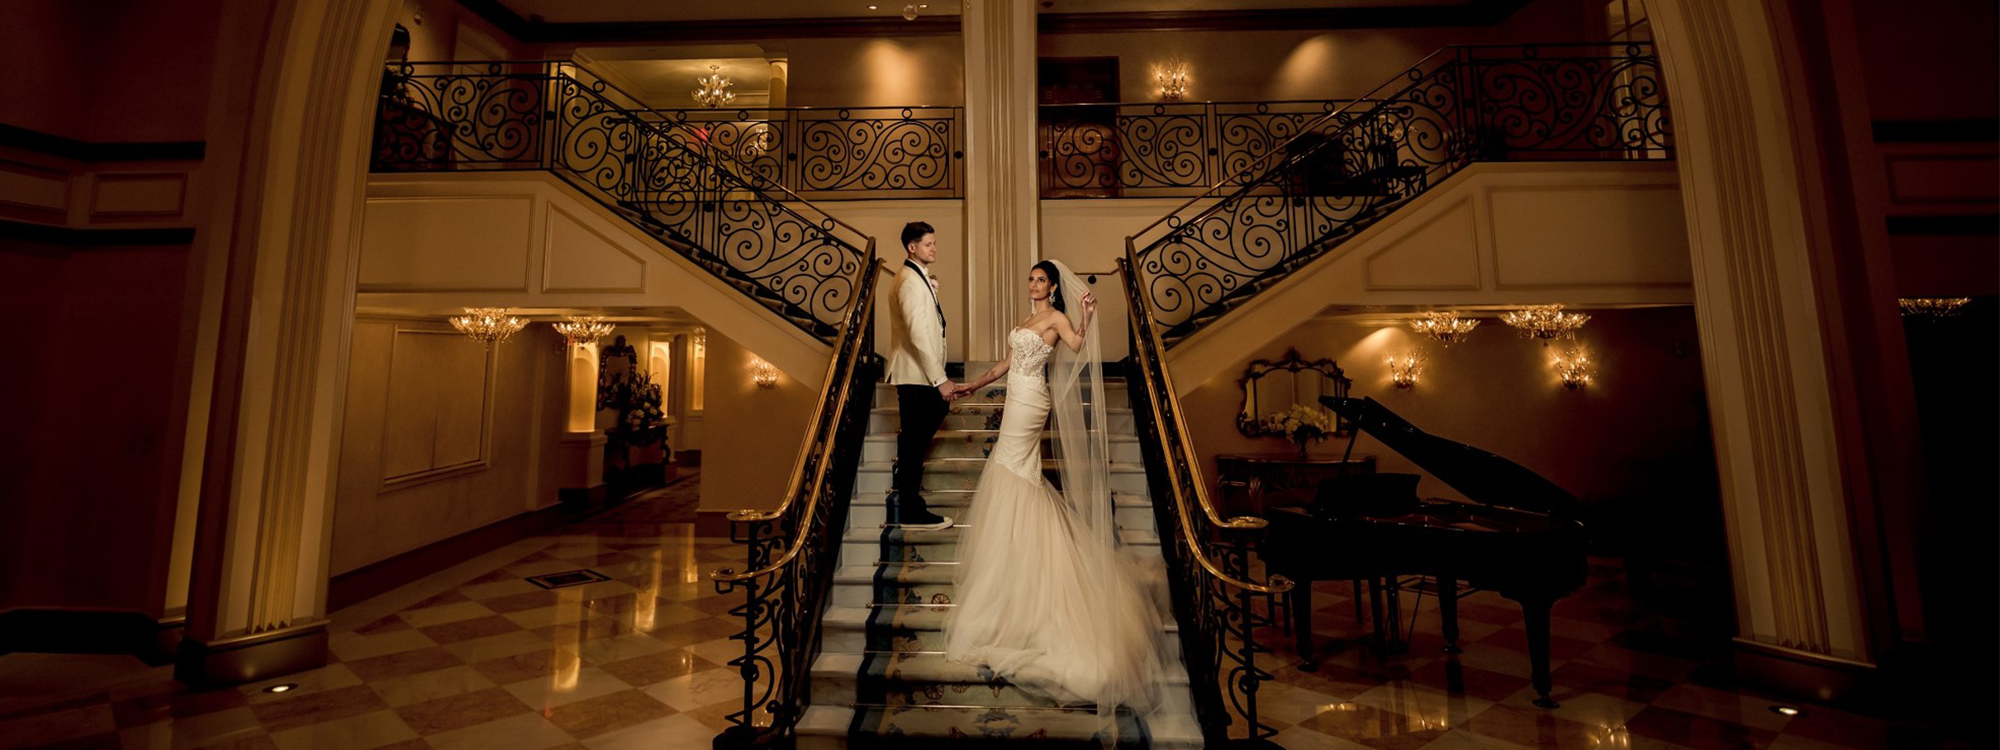 Luxury New Jersey Wedding Venue For Up to 650 Guests - The ...